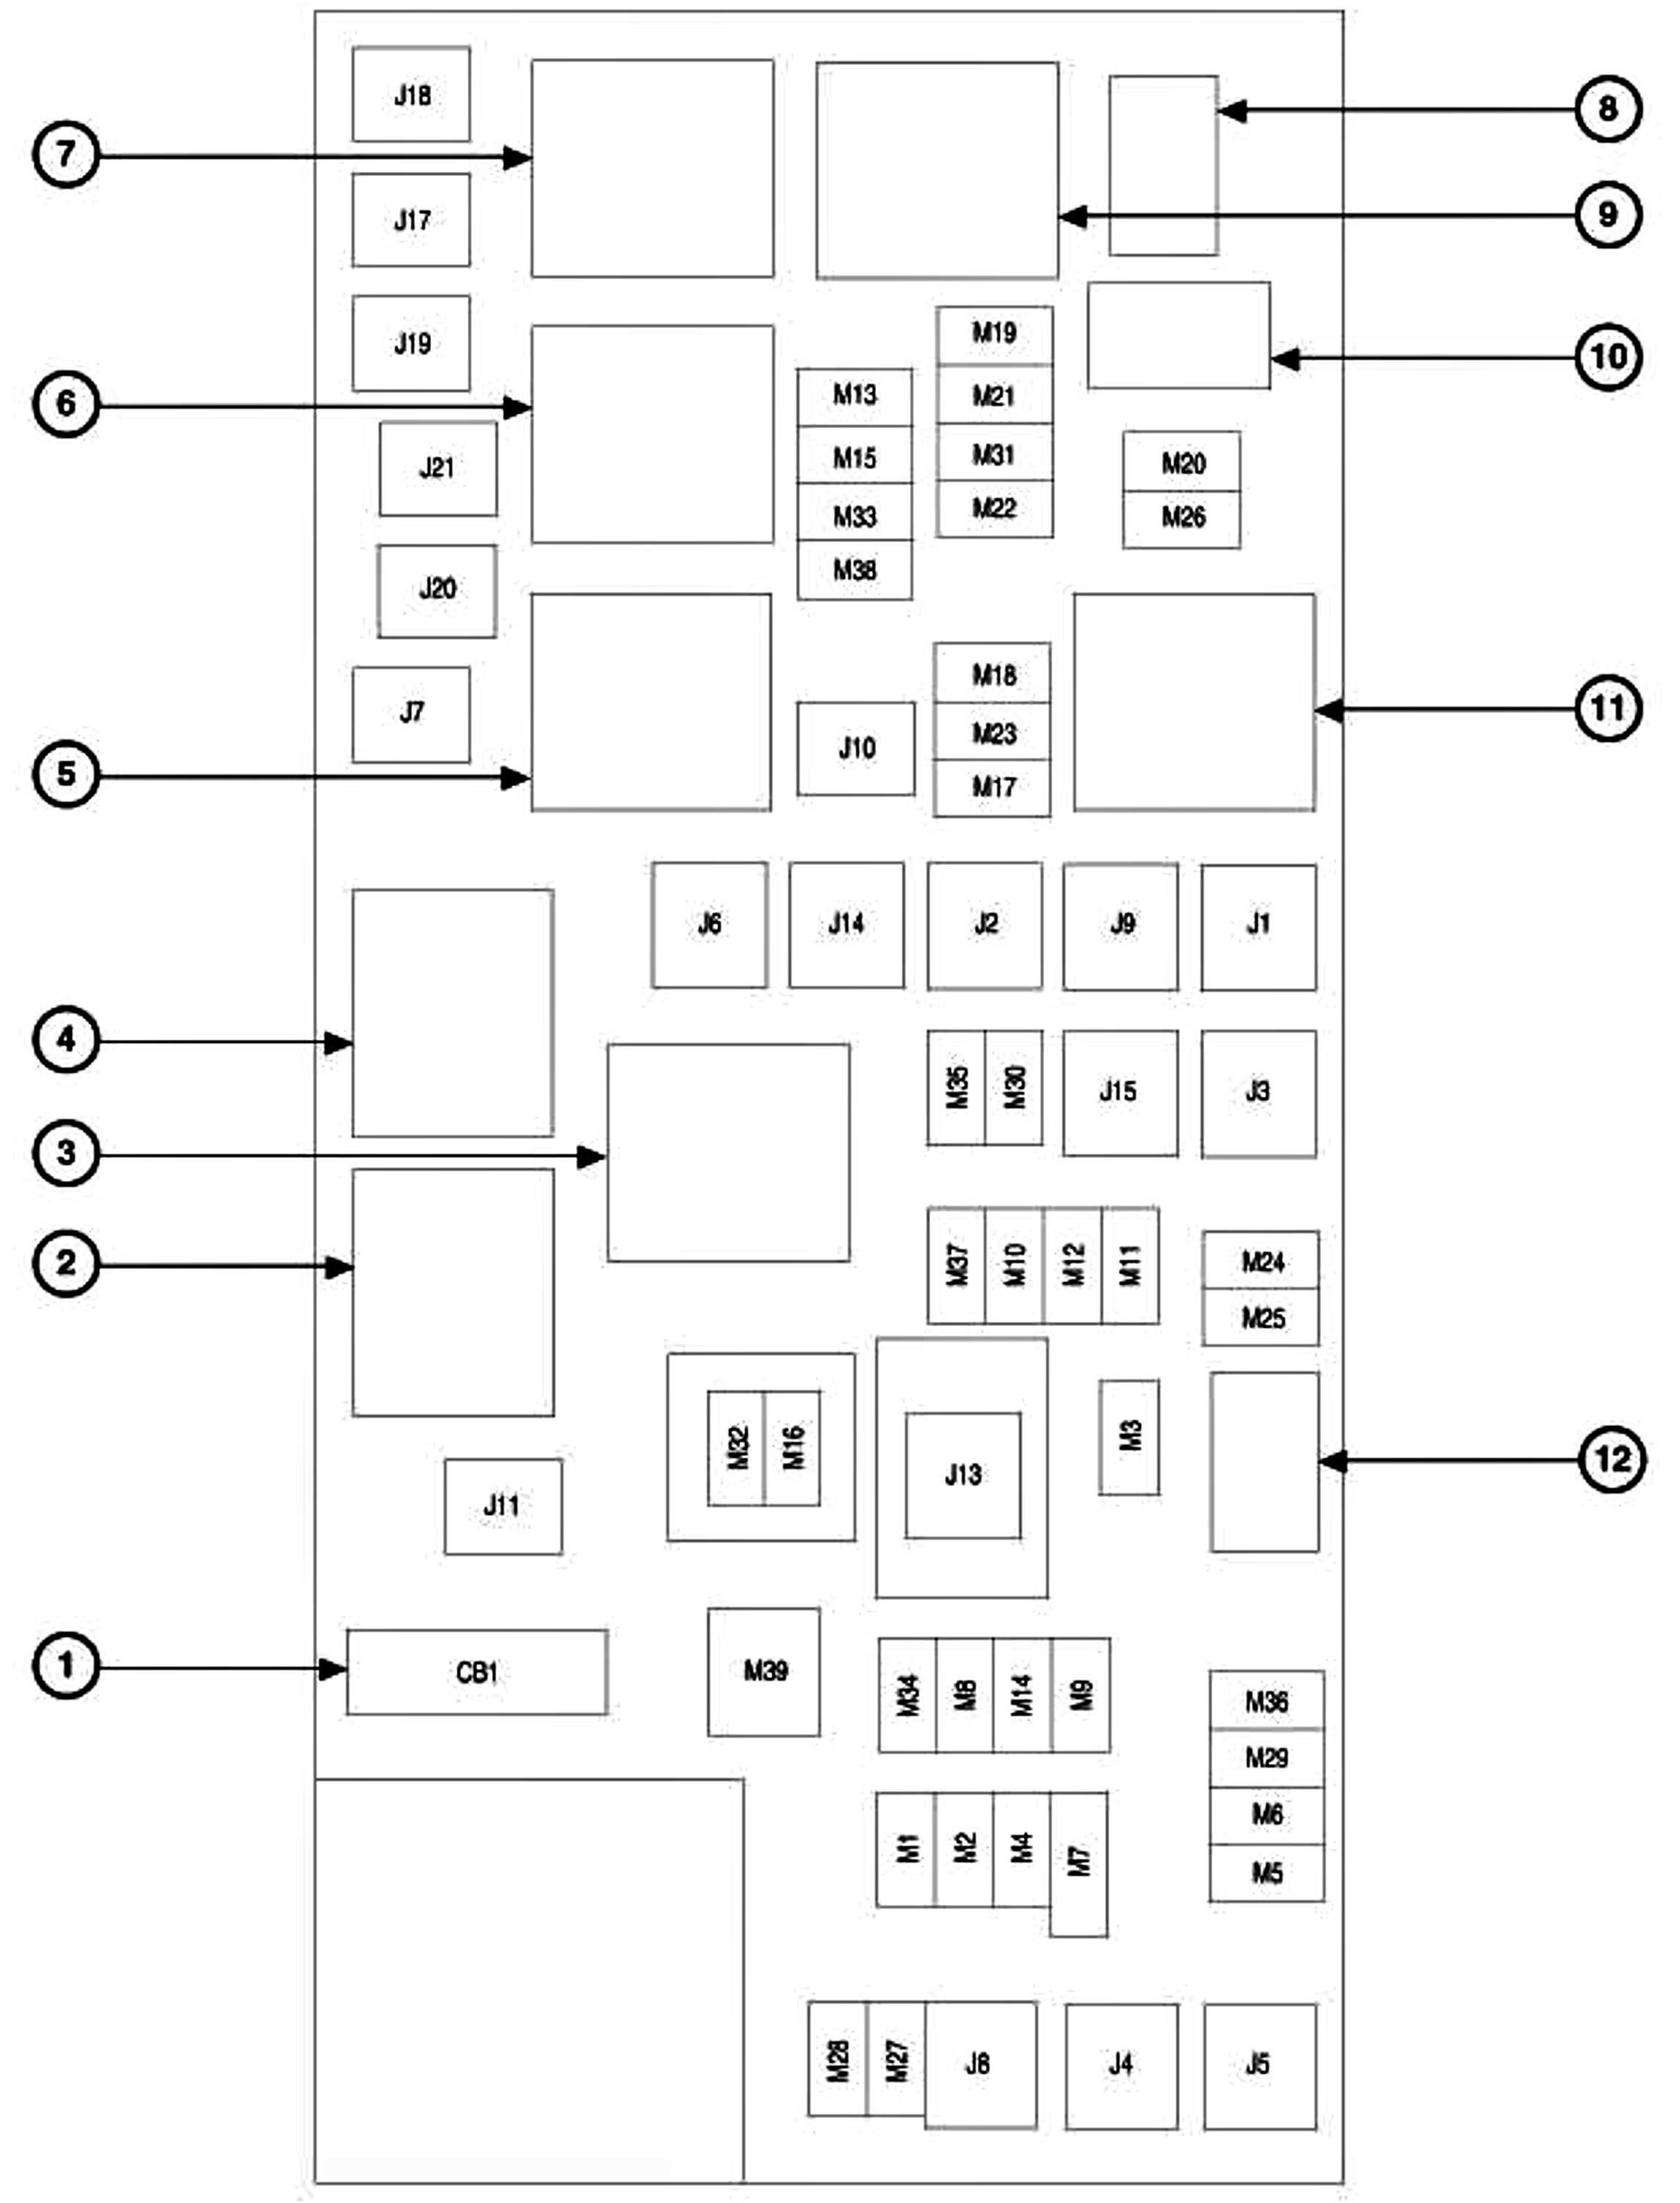 2006 jeep commander fuse box diagram jpeg http carimagescolay casa